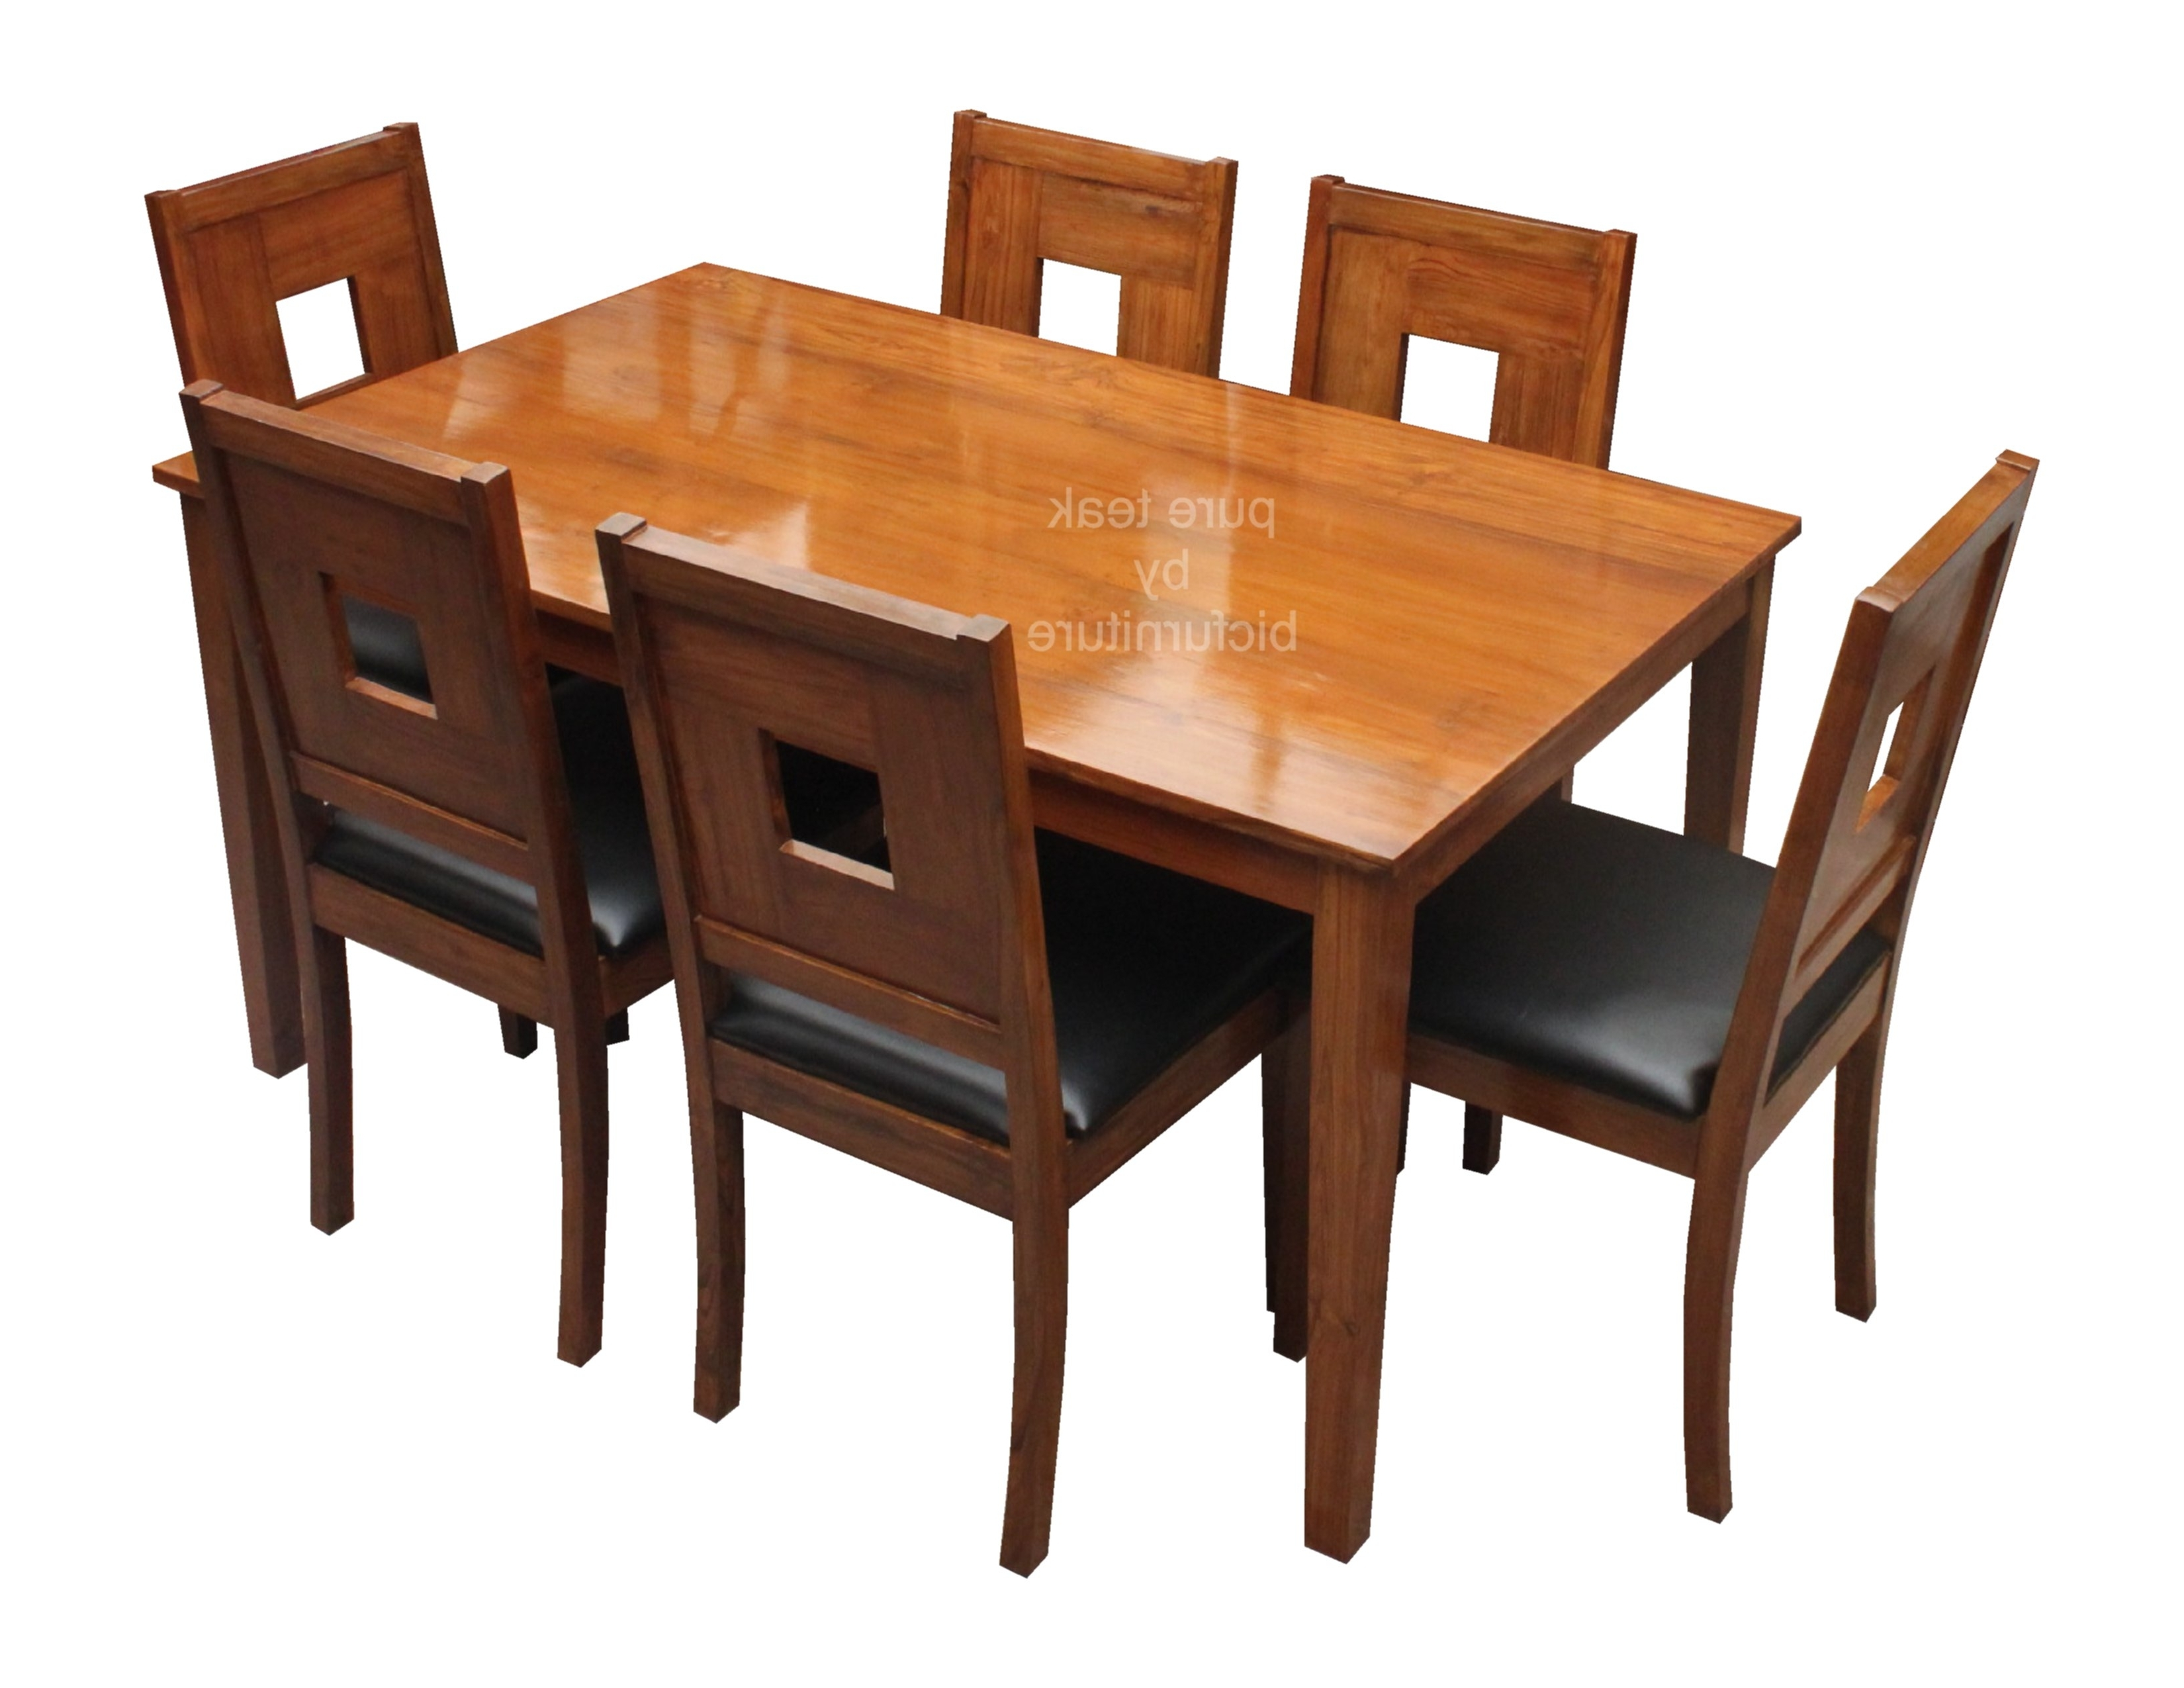 Well Liked Stylish Teak Dining With Art Leather Chairs In 6 Seater Set Within Natural Brown Teak Wood Leather Dining Chairs (View 20 of 20)